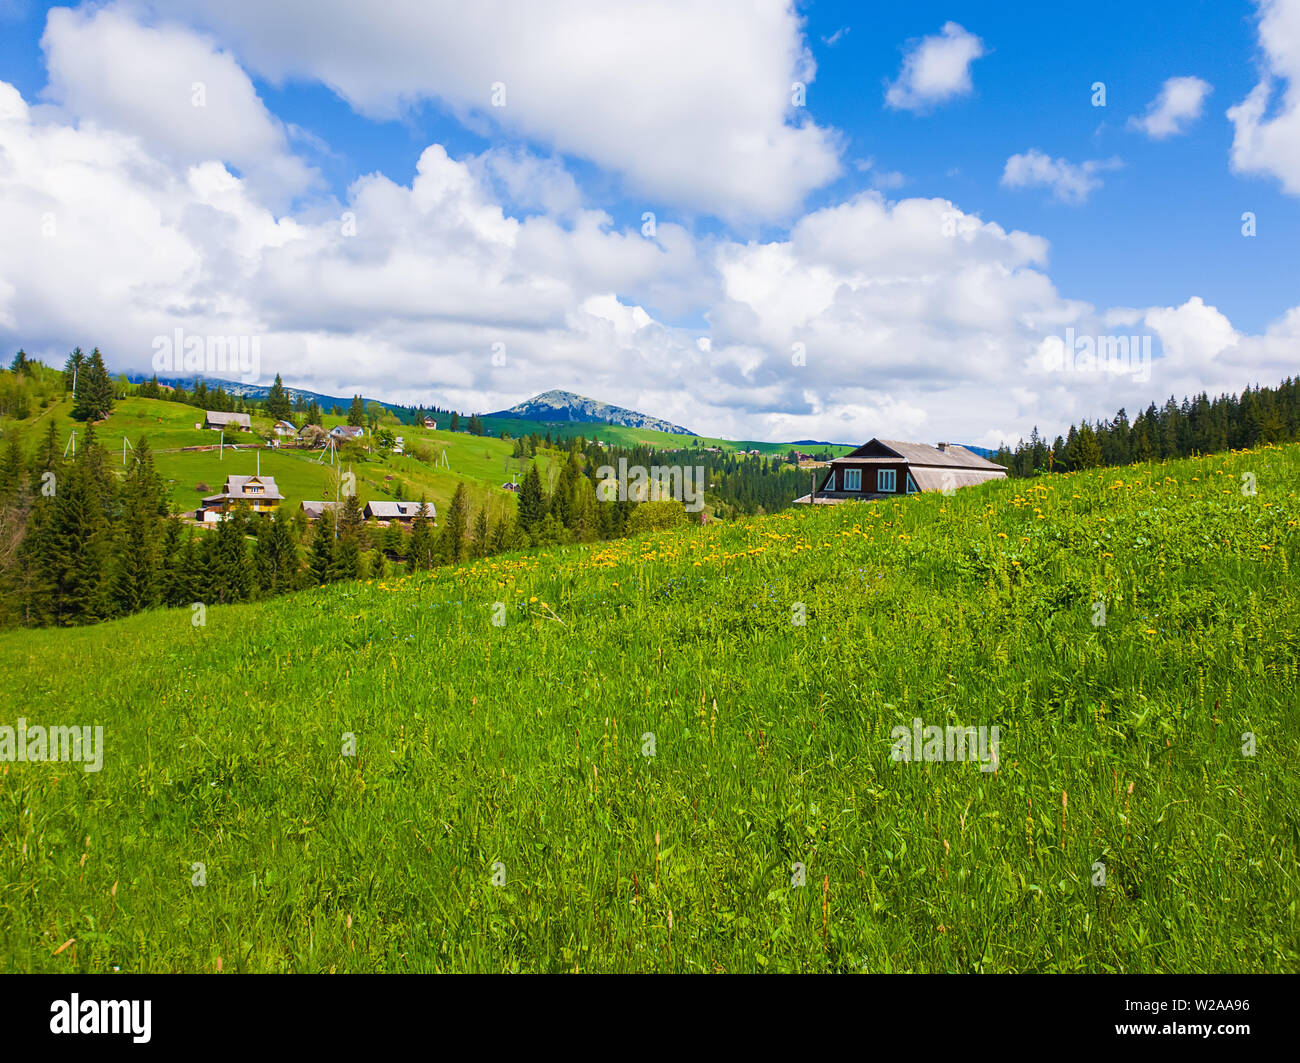 Wooden cabin near the fir forest, sunny spring day with green grass and flowering meadows in Yablunytsya, Carpathian village, Ukraine - Stock Image